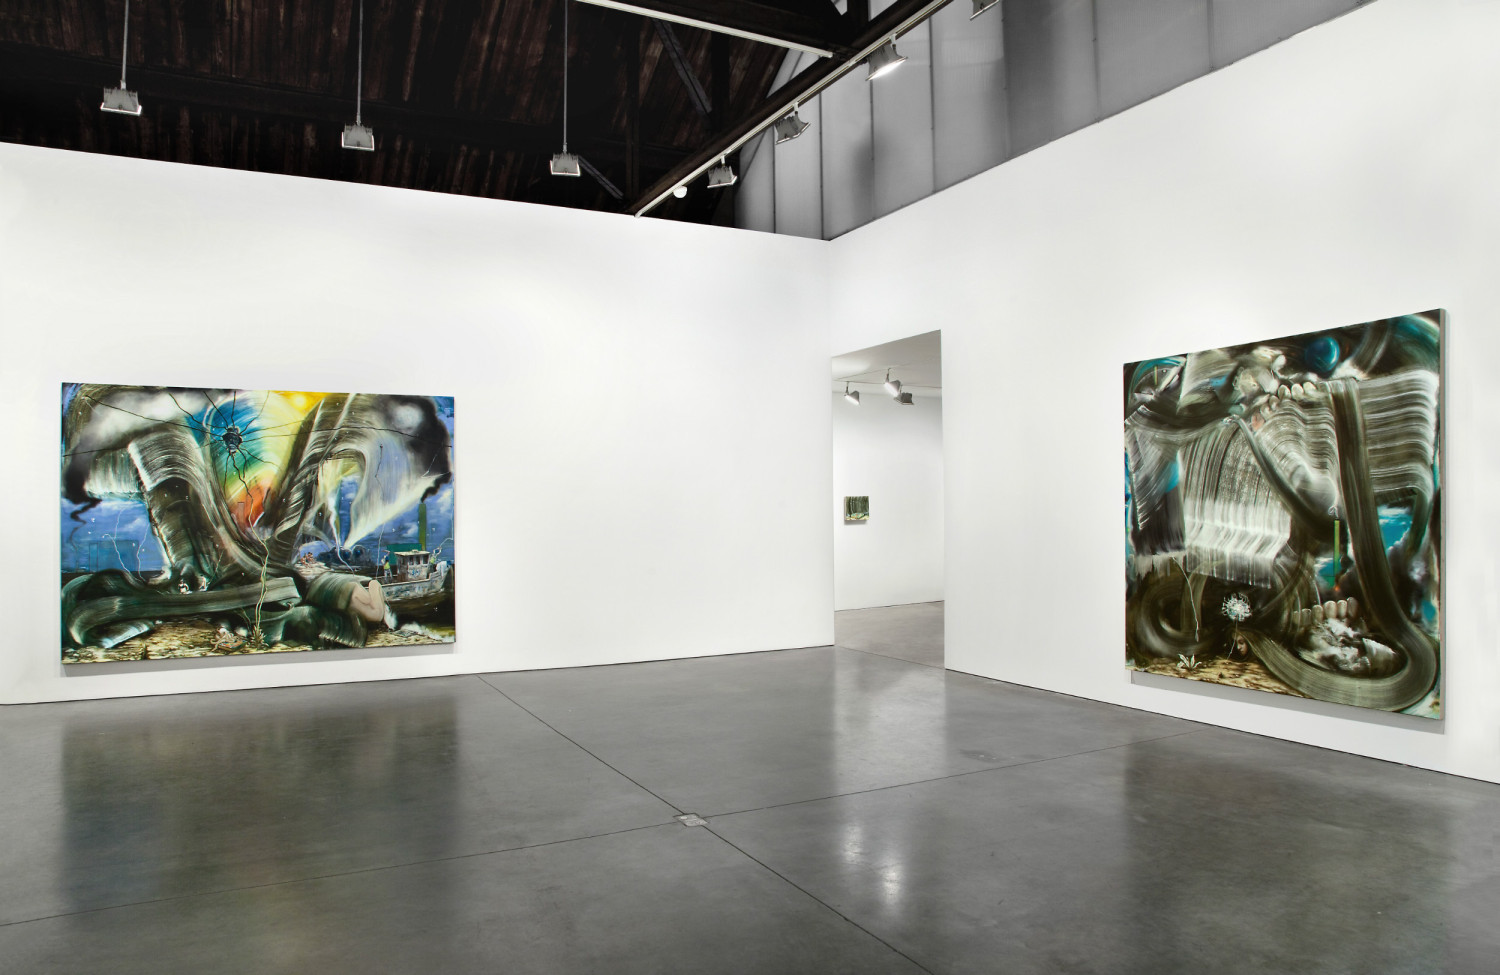 Nigel Cooke, Andrea Rosen Gallery 2012 – Nigel Cooke